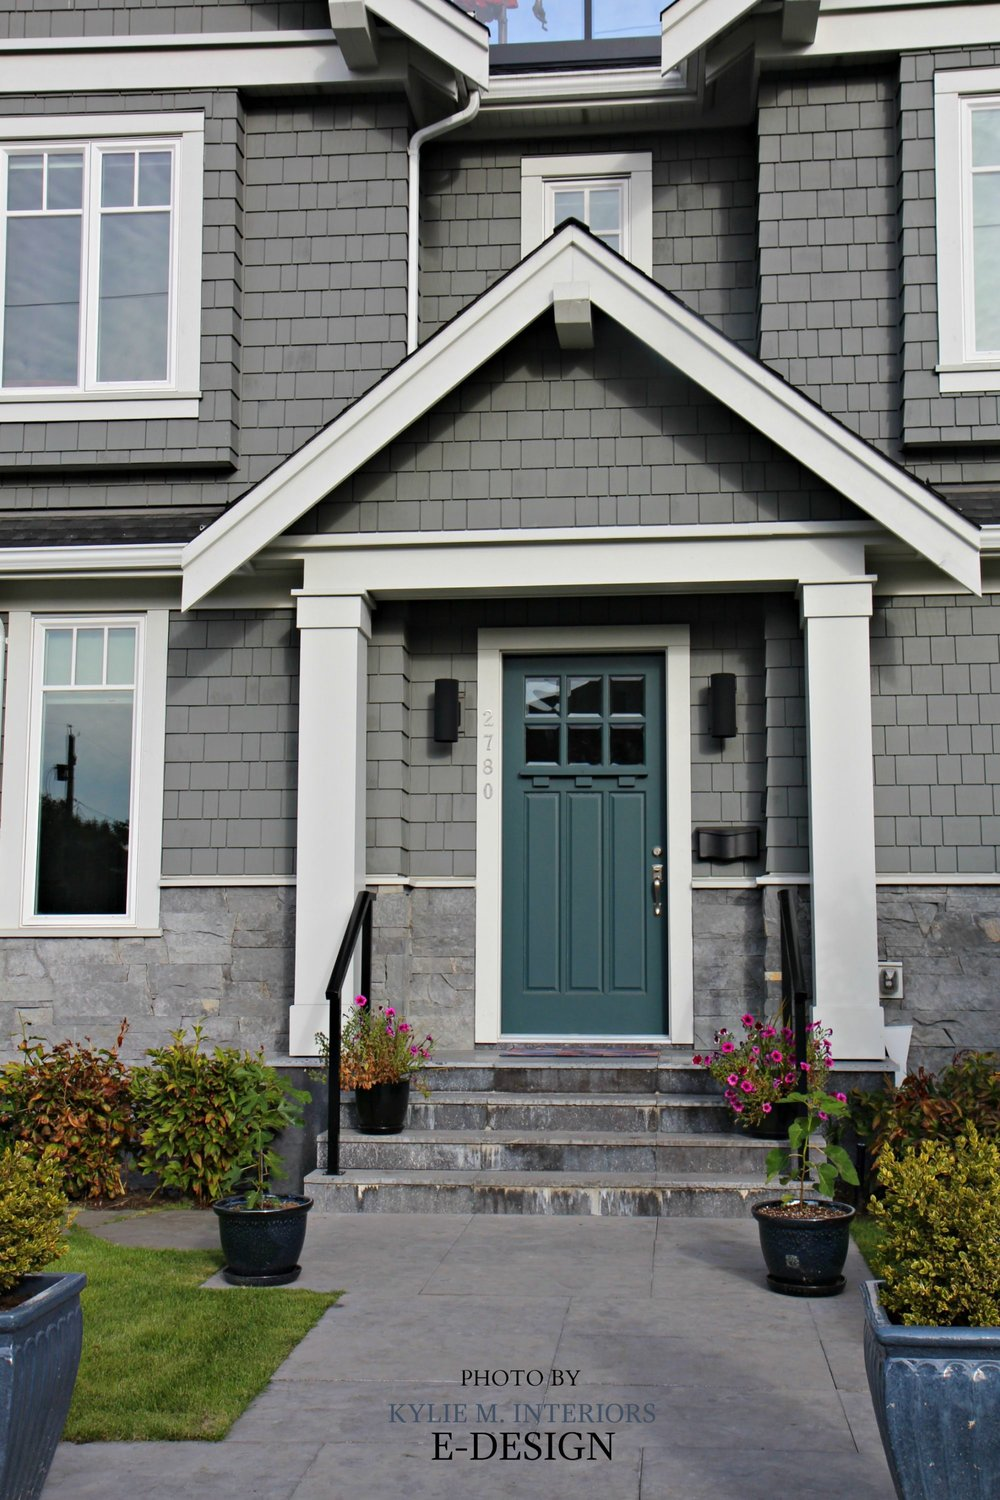 Front-door-curb-appeal-colour-similar-to-Sherwin-Williams-Riverway.-Shingles-exterior-similar-to-BEnjamin-Moore-Chelsea-Gray.-Kylie-M-E-design-photo.jpg